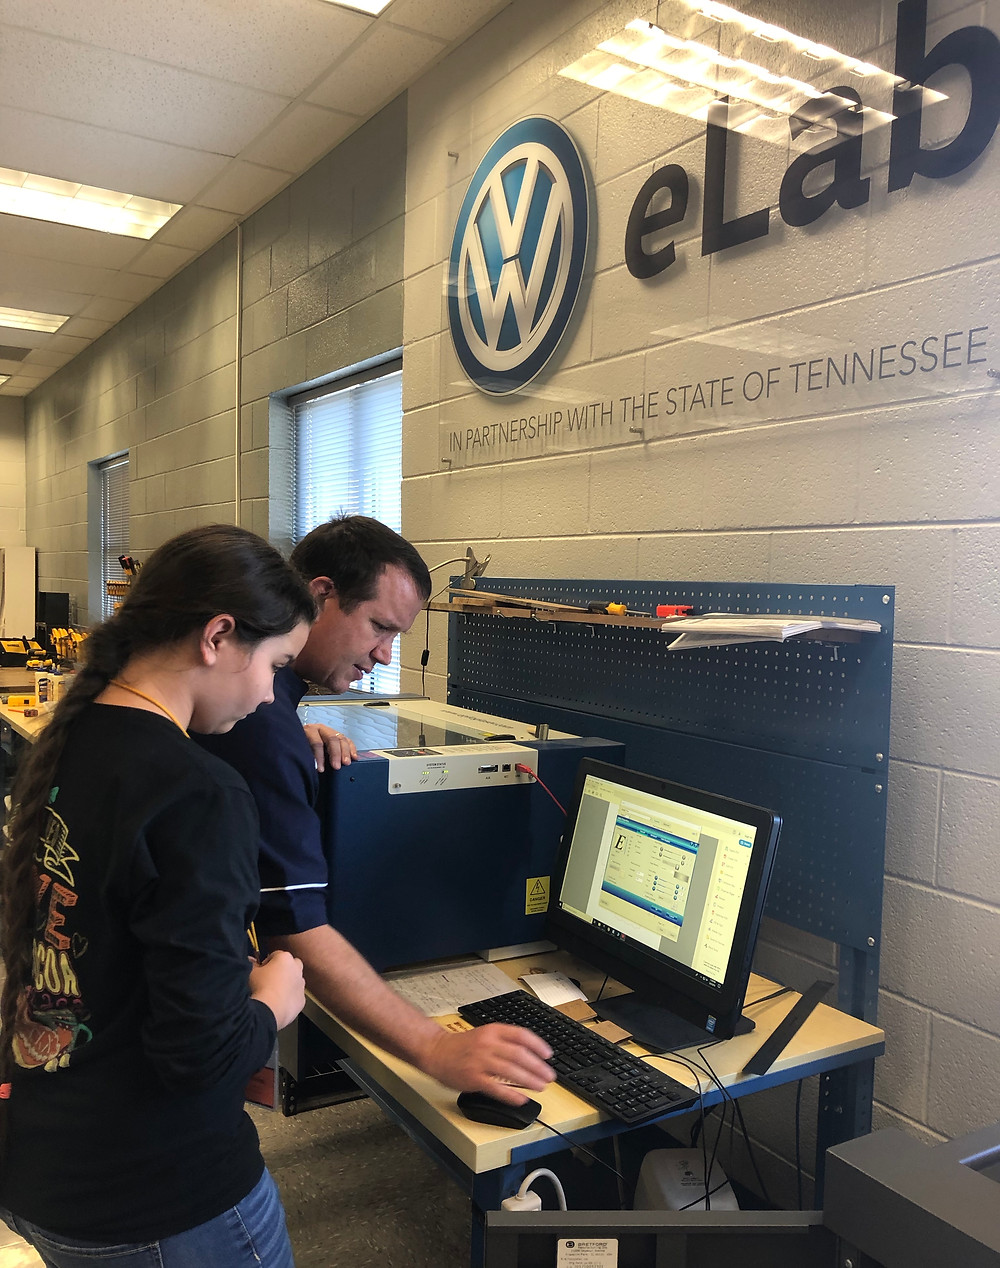 Richardson reviews the tools and computer software with sixth-grade students in the VW eLab.